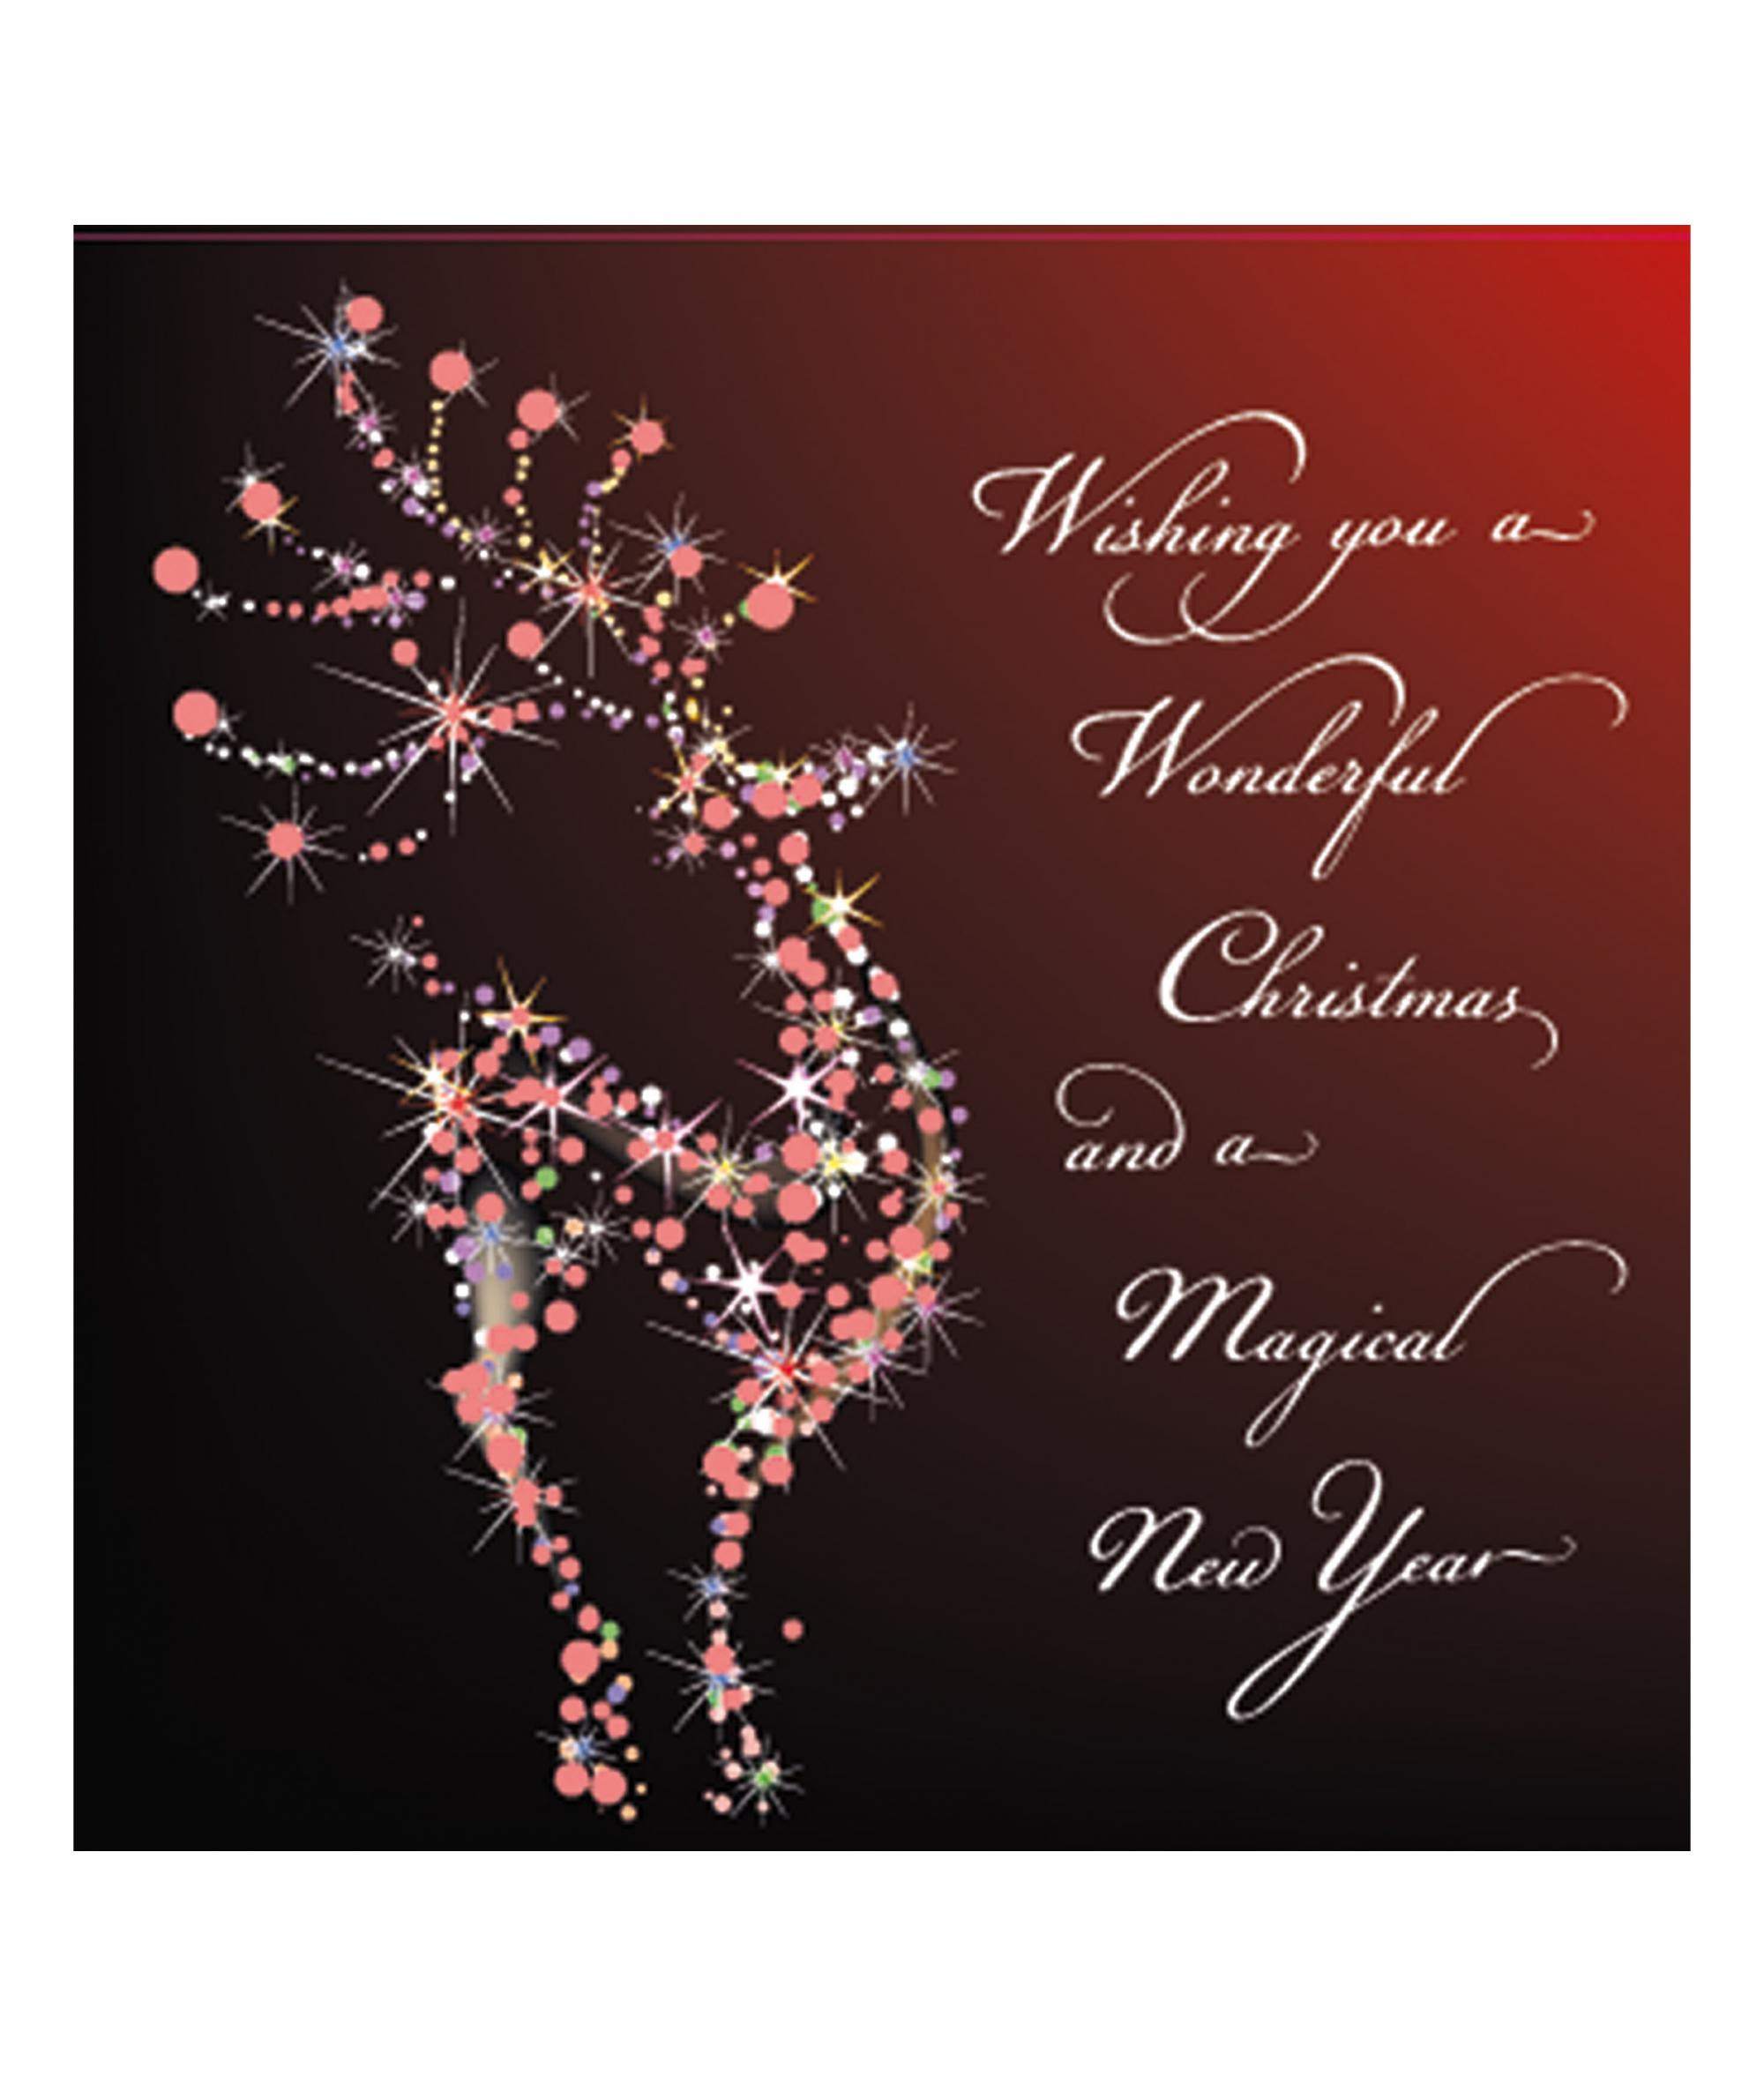 Photo Christmas Card Festive Reindeer Christmas Card Pack Of 10 Cancer Research Uk